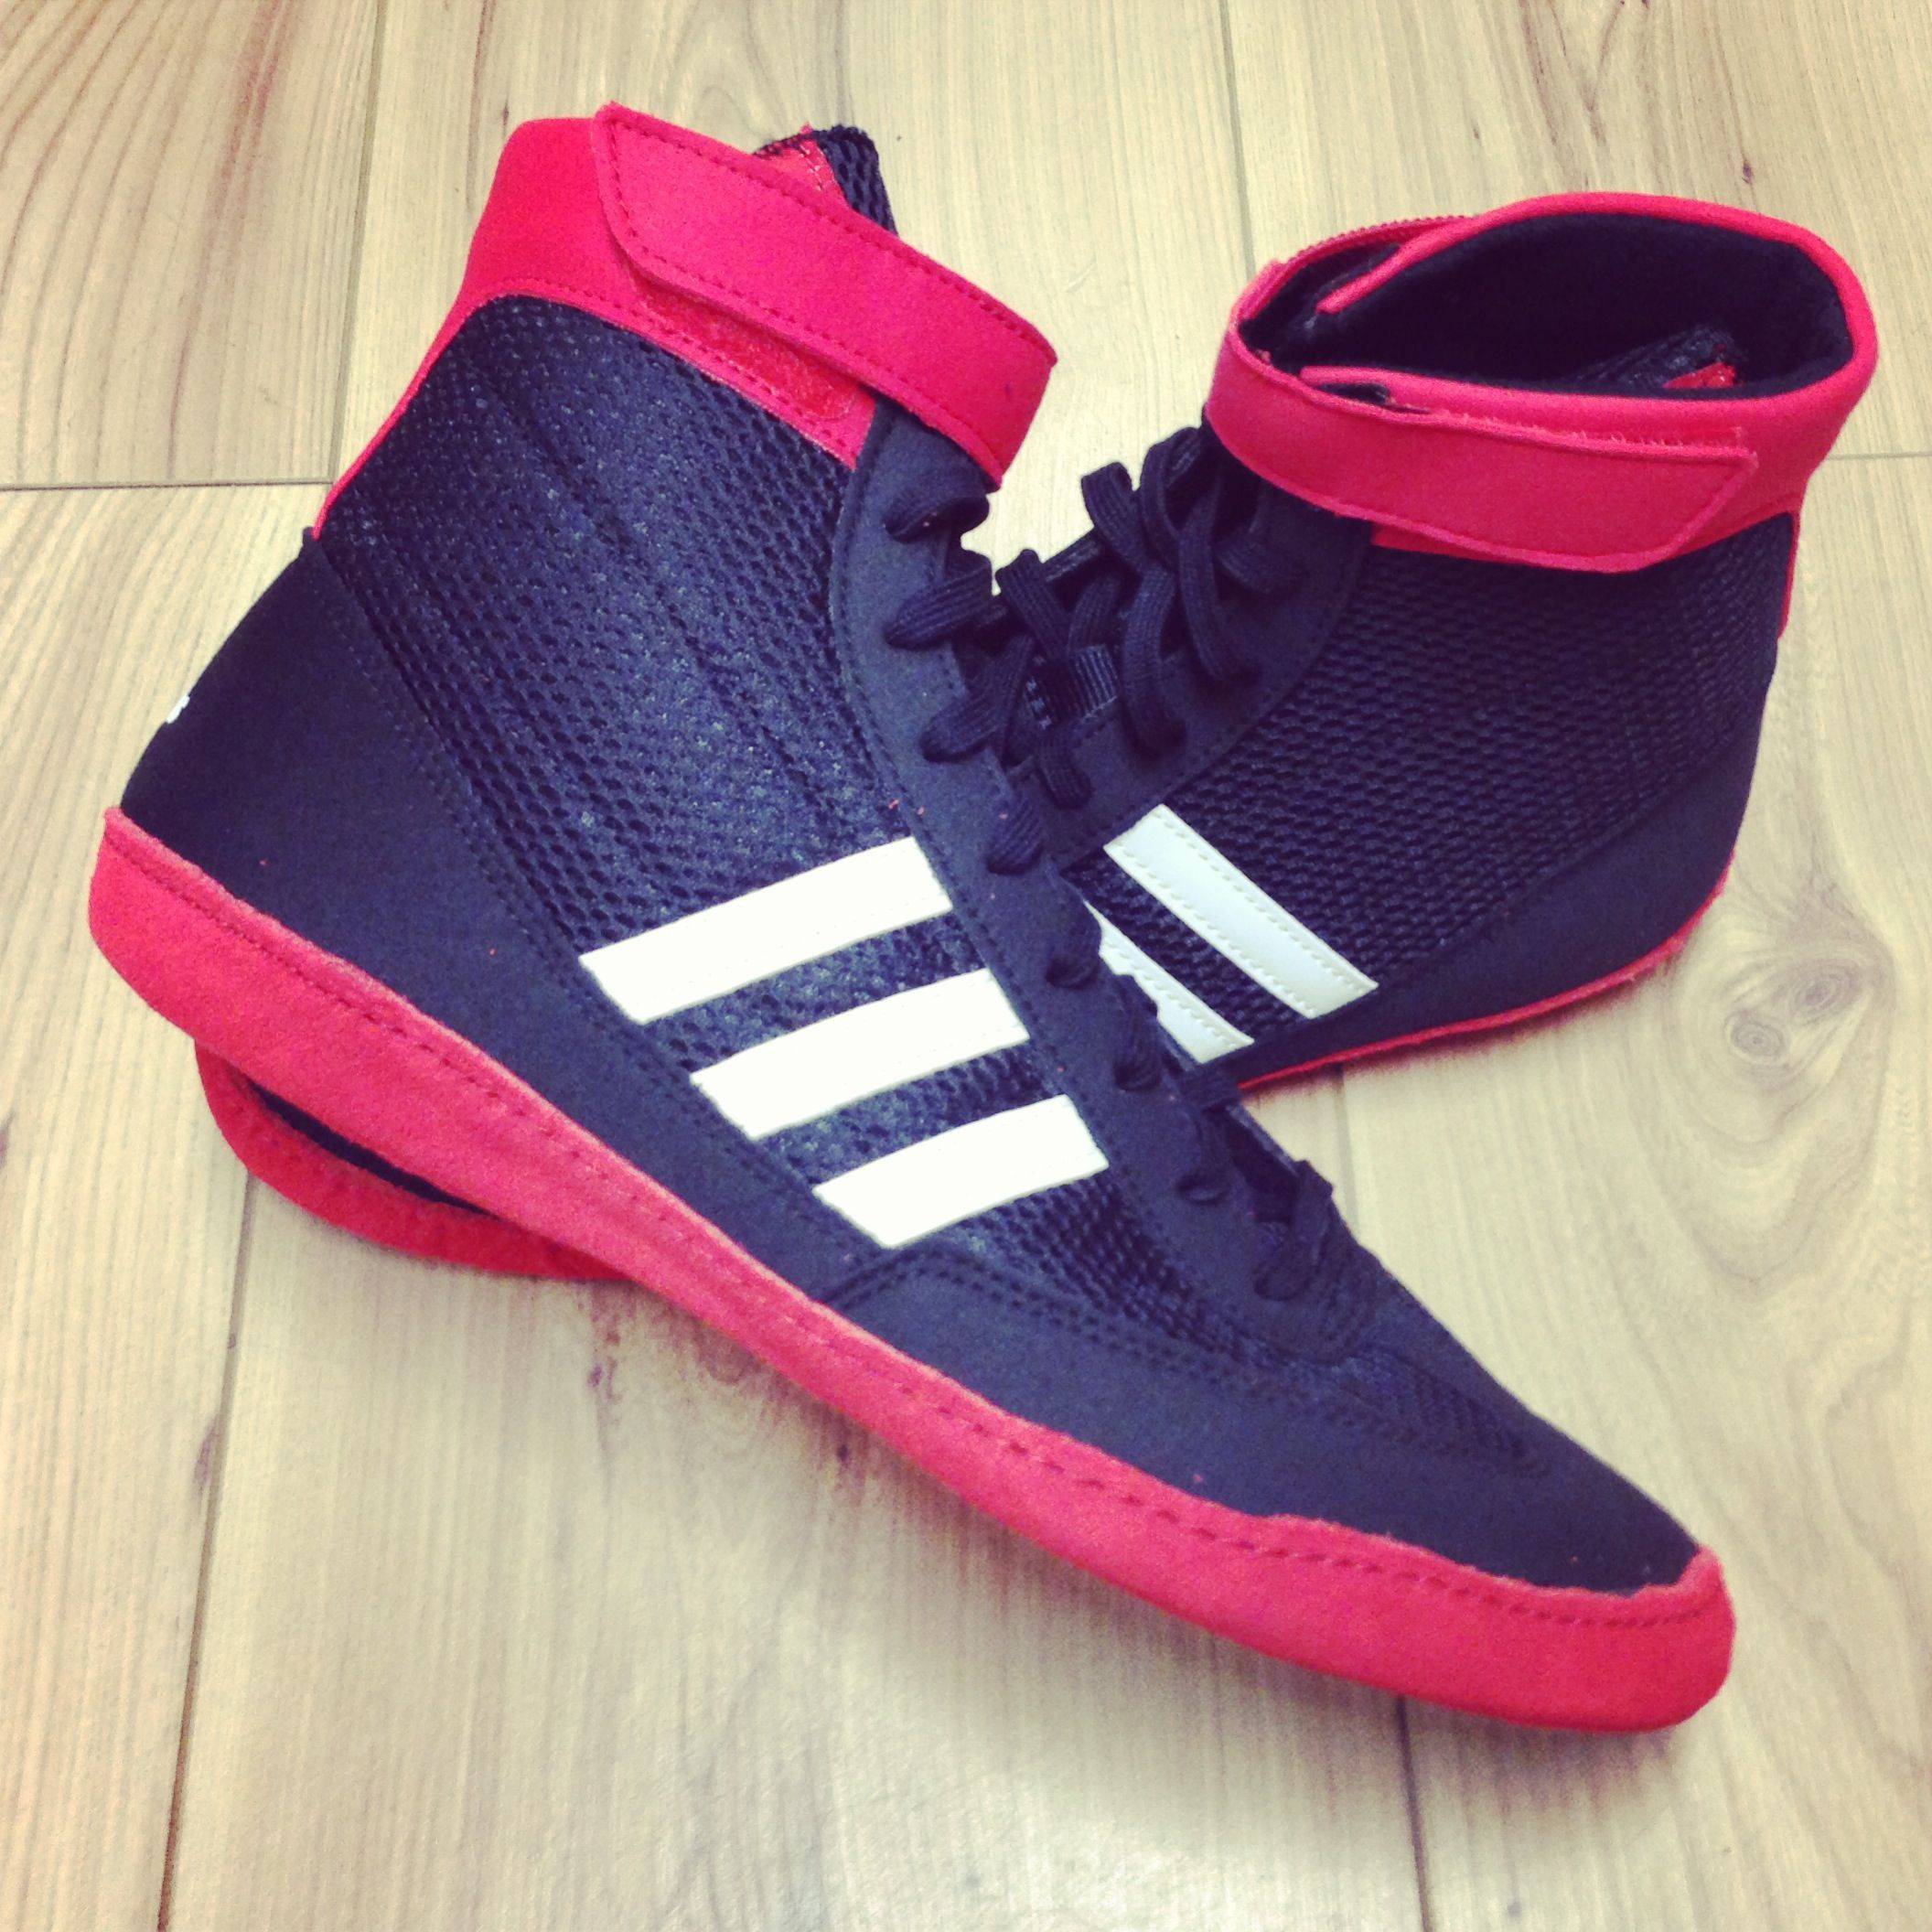 Sugar Ray's Exclusive Adidas Combat Speed IV Black/Red Boxing and Wrestling boot available only at www.sugarrays.co.uk £65.00